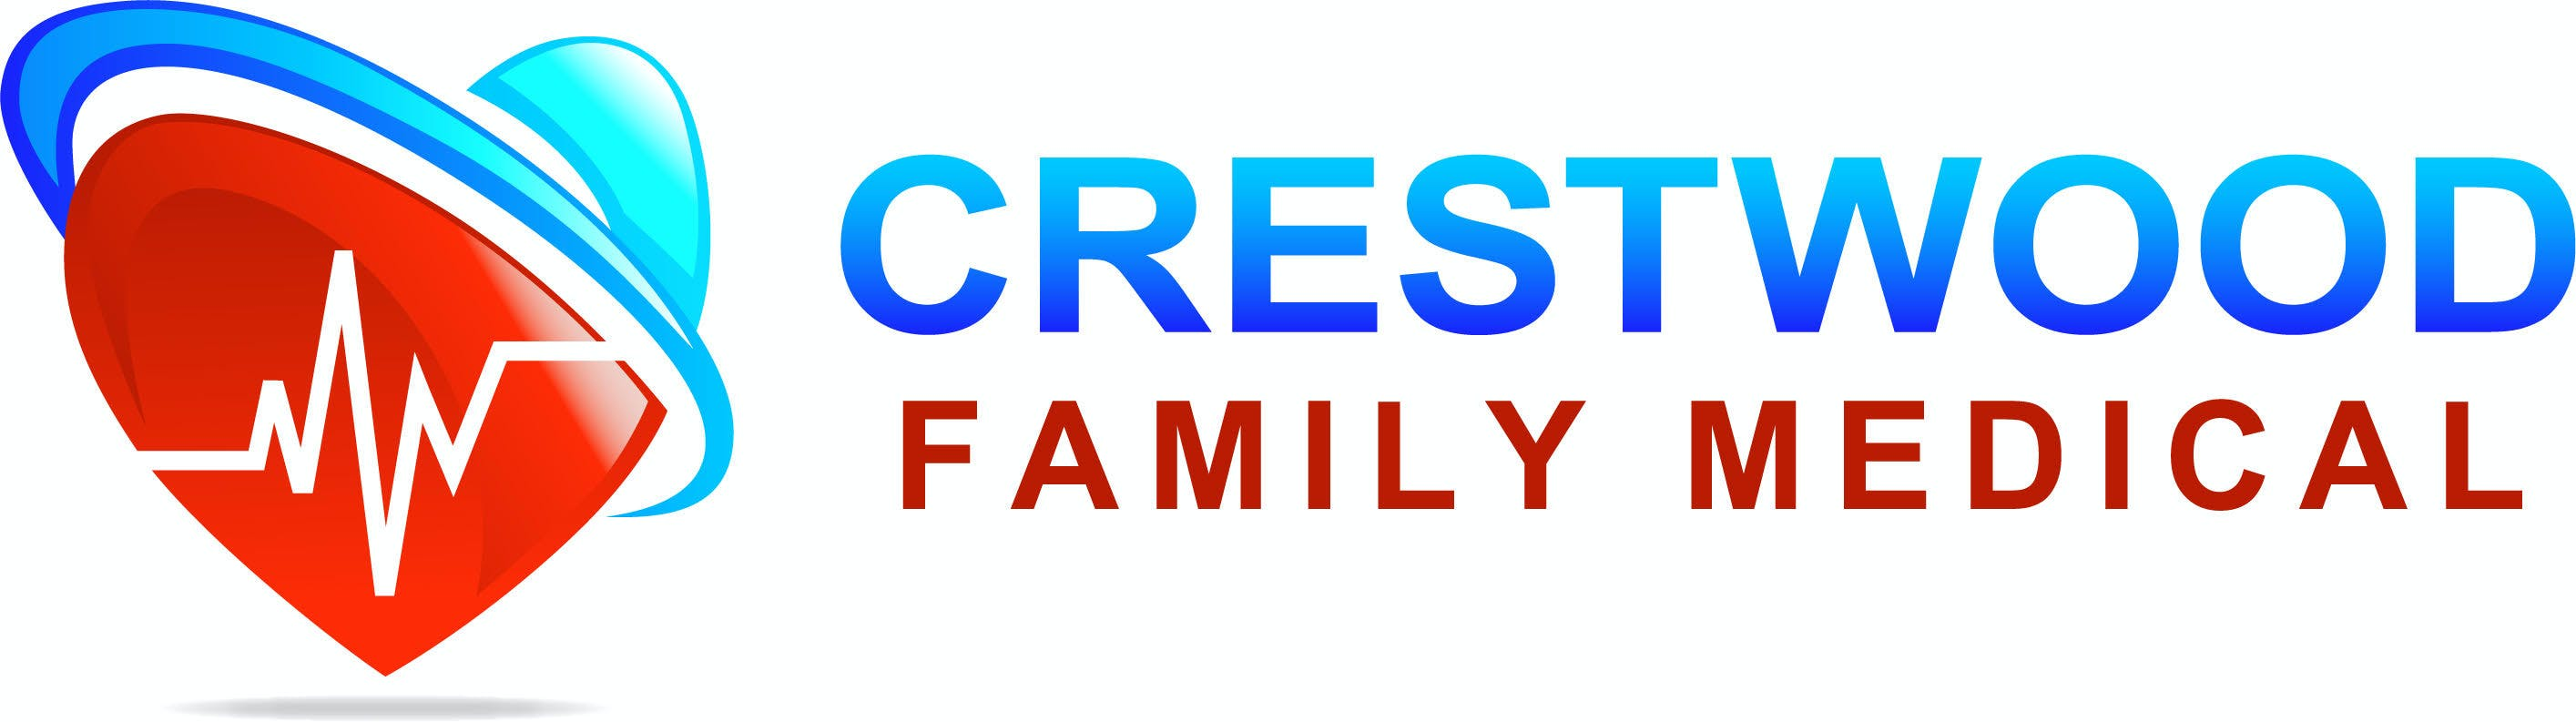 Crestwood Family Medical Logo